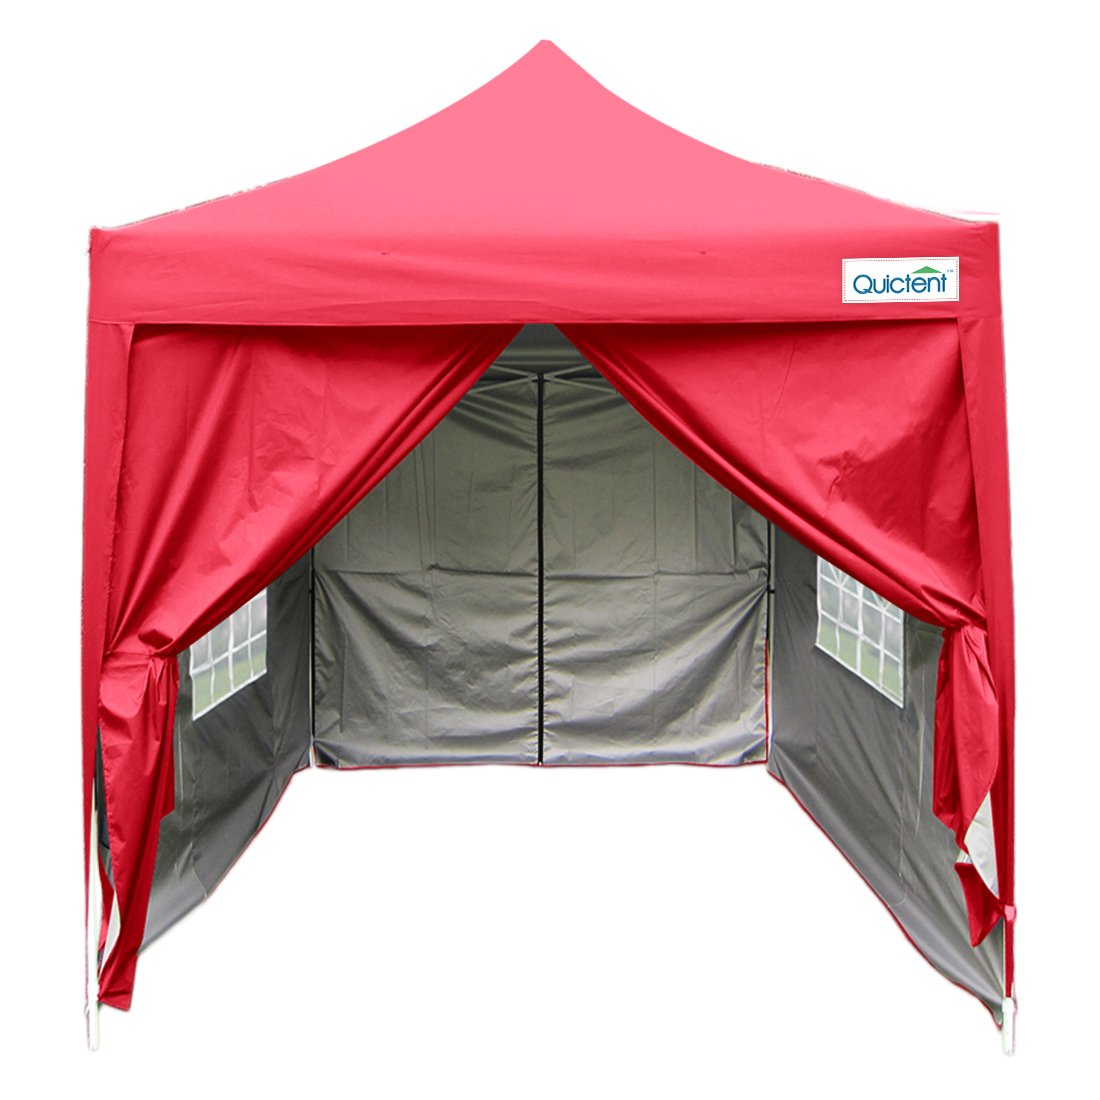 Amazon.com  Quictent Silvox Waterproof 6.6x6.6u0027 EZ Pop Up Canopy Commercial Gazebo Party Tent Red Portable Pyramid-roofed Style Removable sides With Roller ...  sc 1 st  Amazon.com & Amazon.com : Quictent Silvox Waterproof 6.6x6.6u0027 EZ Pop Up Canopy ...